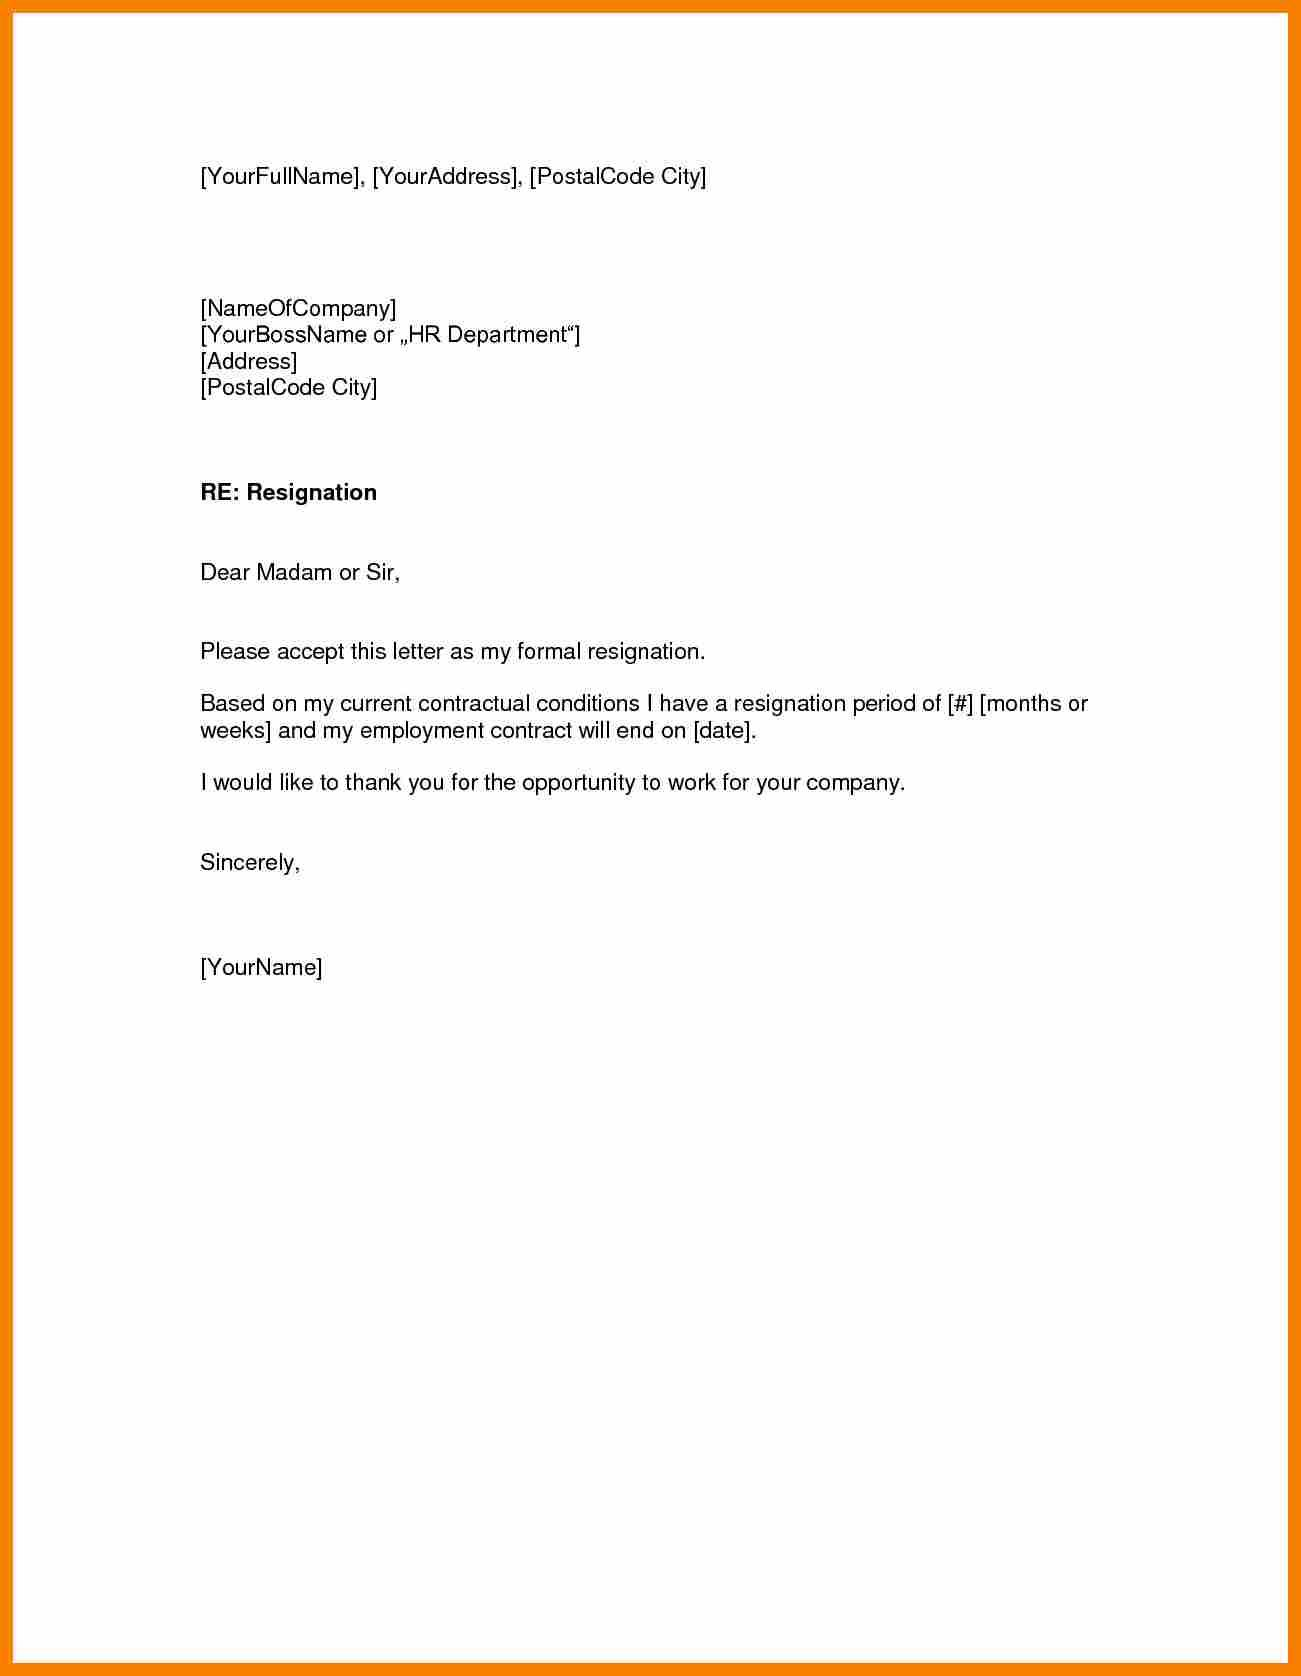 Consent letter format hindi resignation sample gallery complaint consent letter format hindi resignation sample gallery complaint marathi mumbai student aljukfo Images